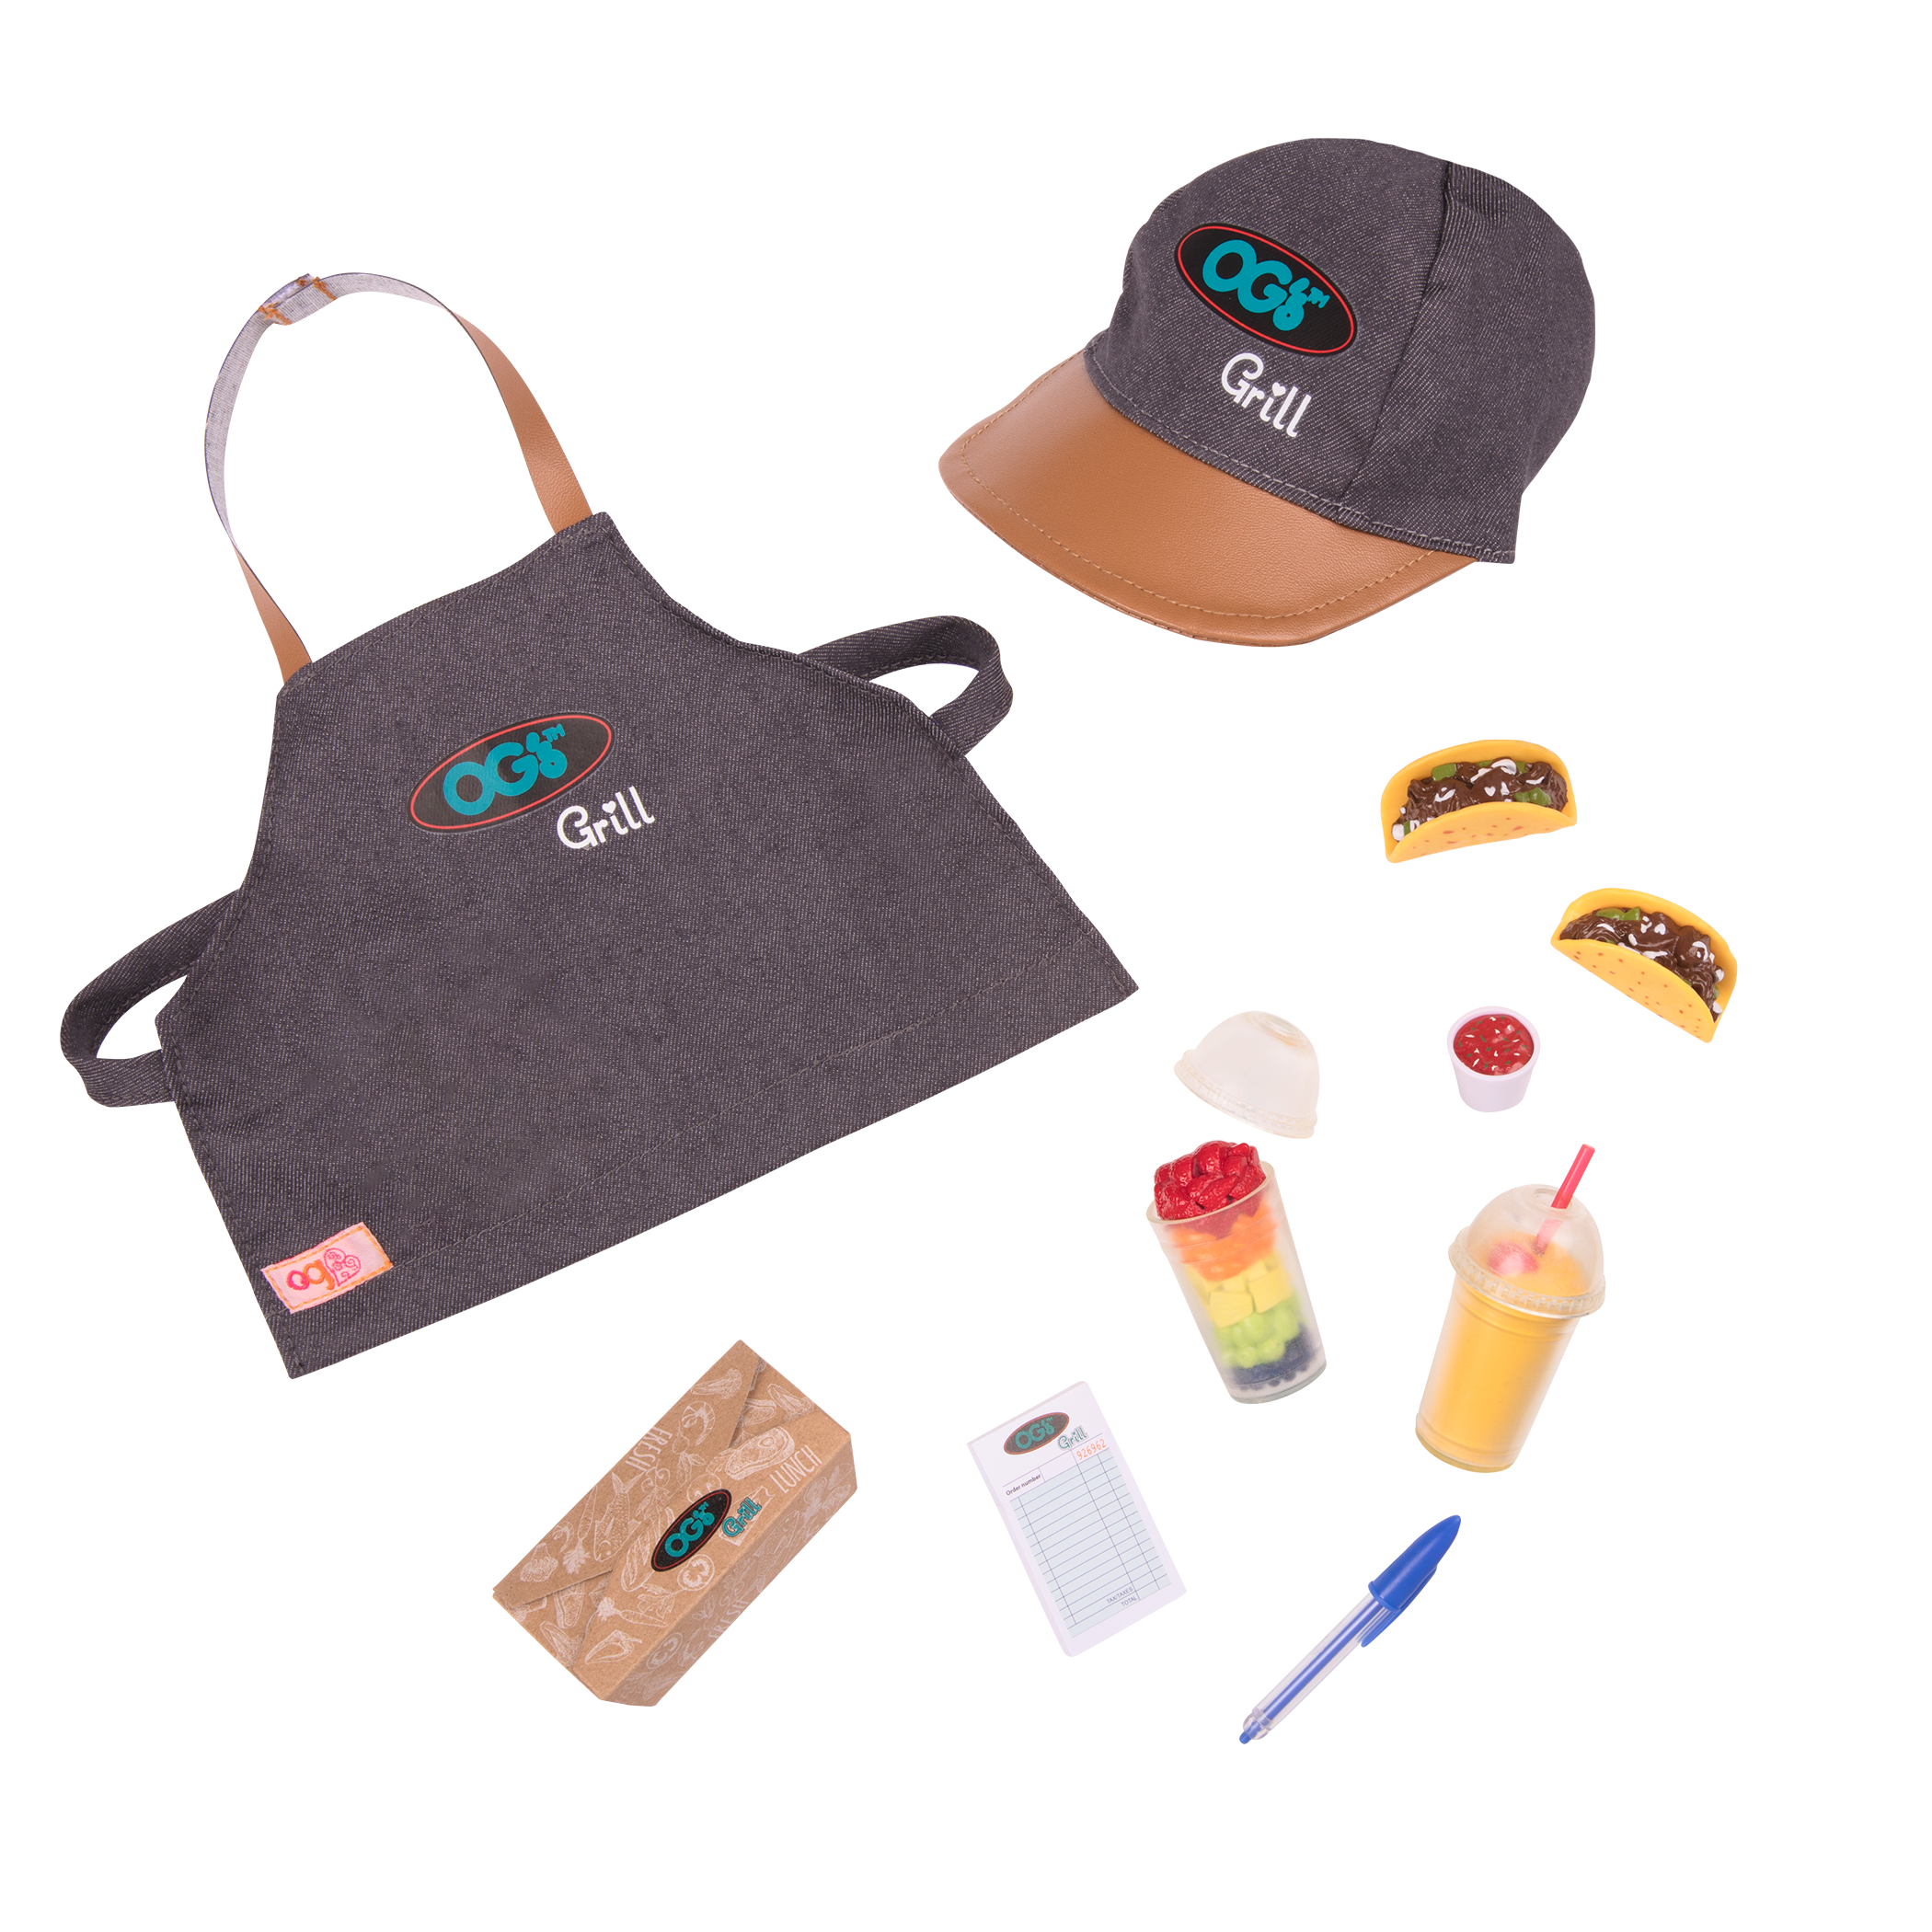 Detail of Food Truck outfit and accessories